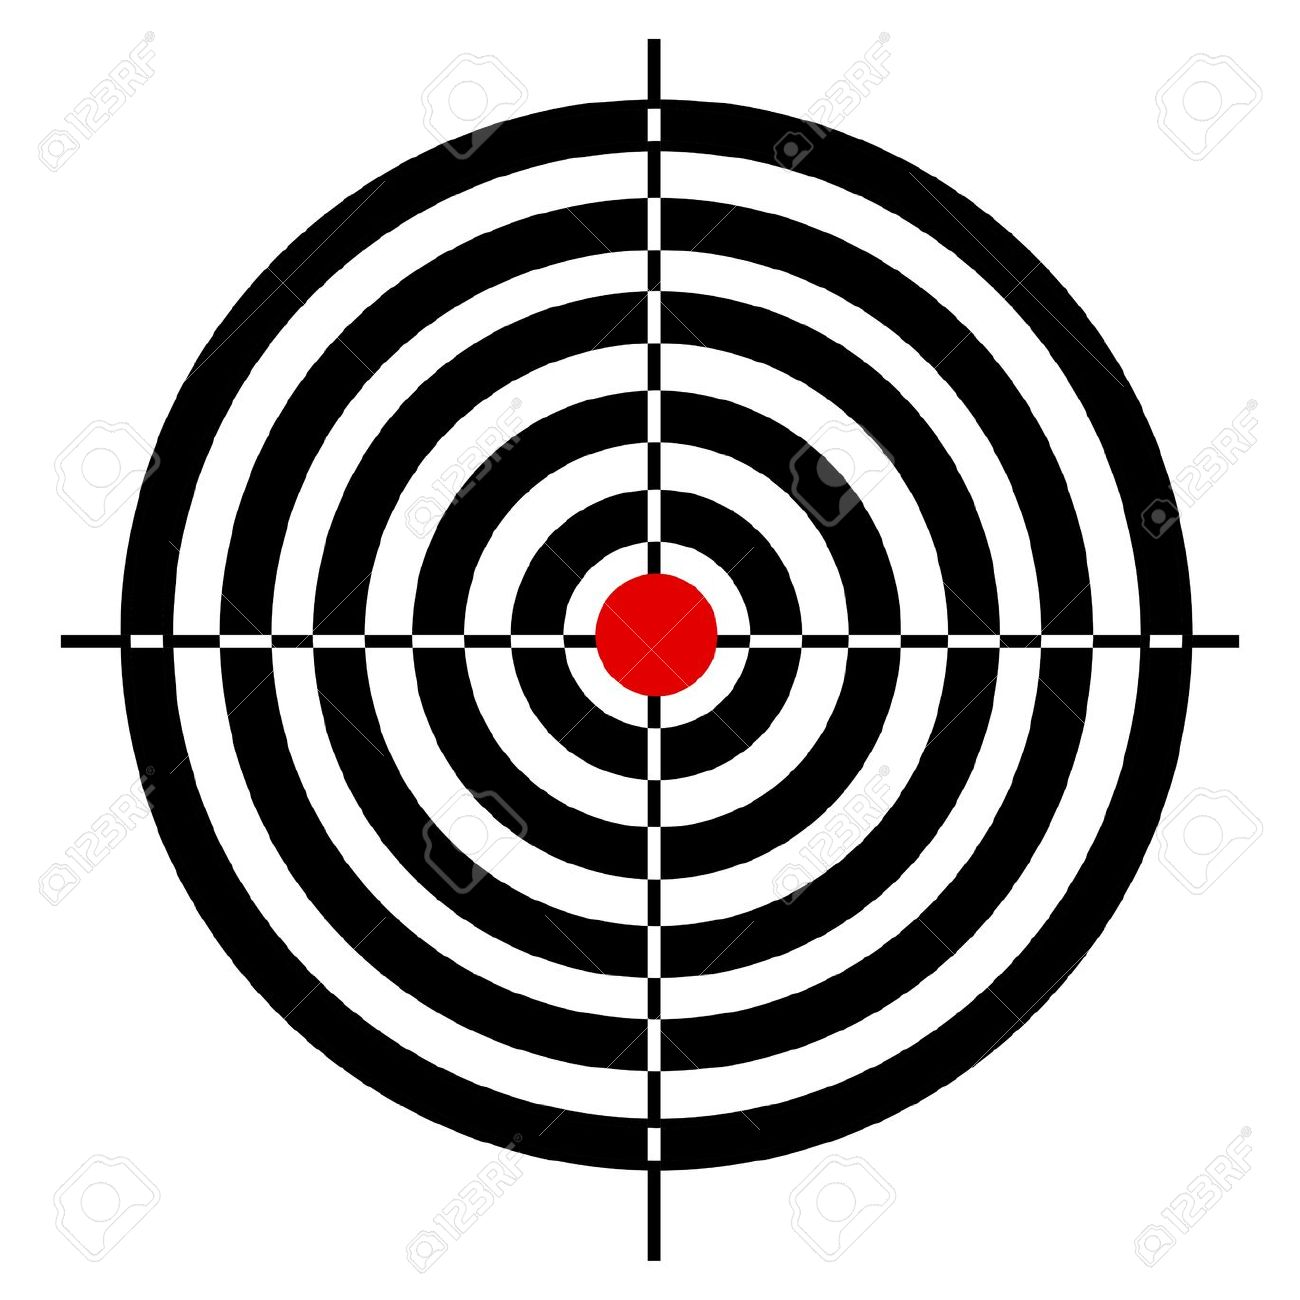 Target clipart no background clip library library Bullseye clipart no background - ClipartFox clip library library